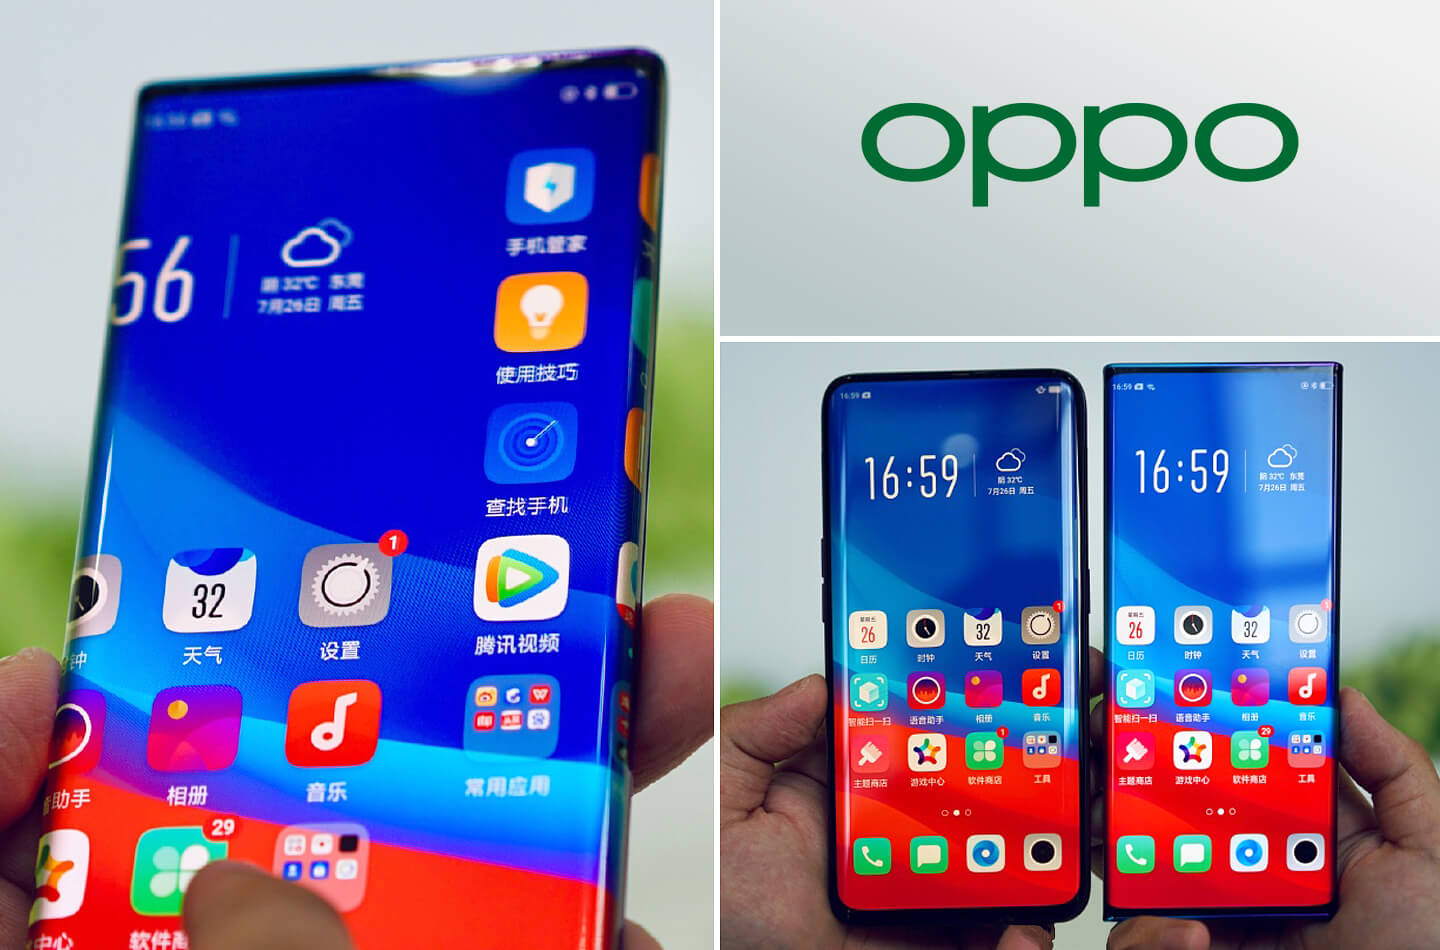 Oppo telefoon curved display